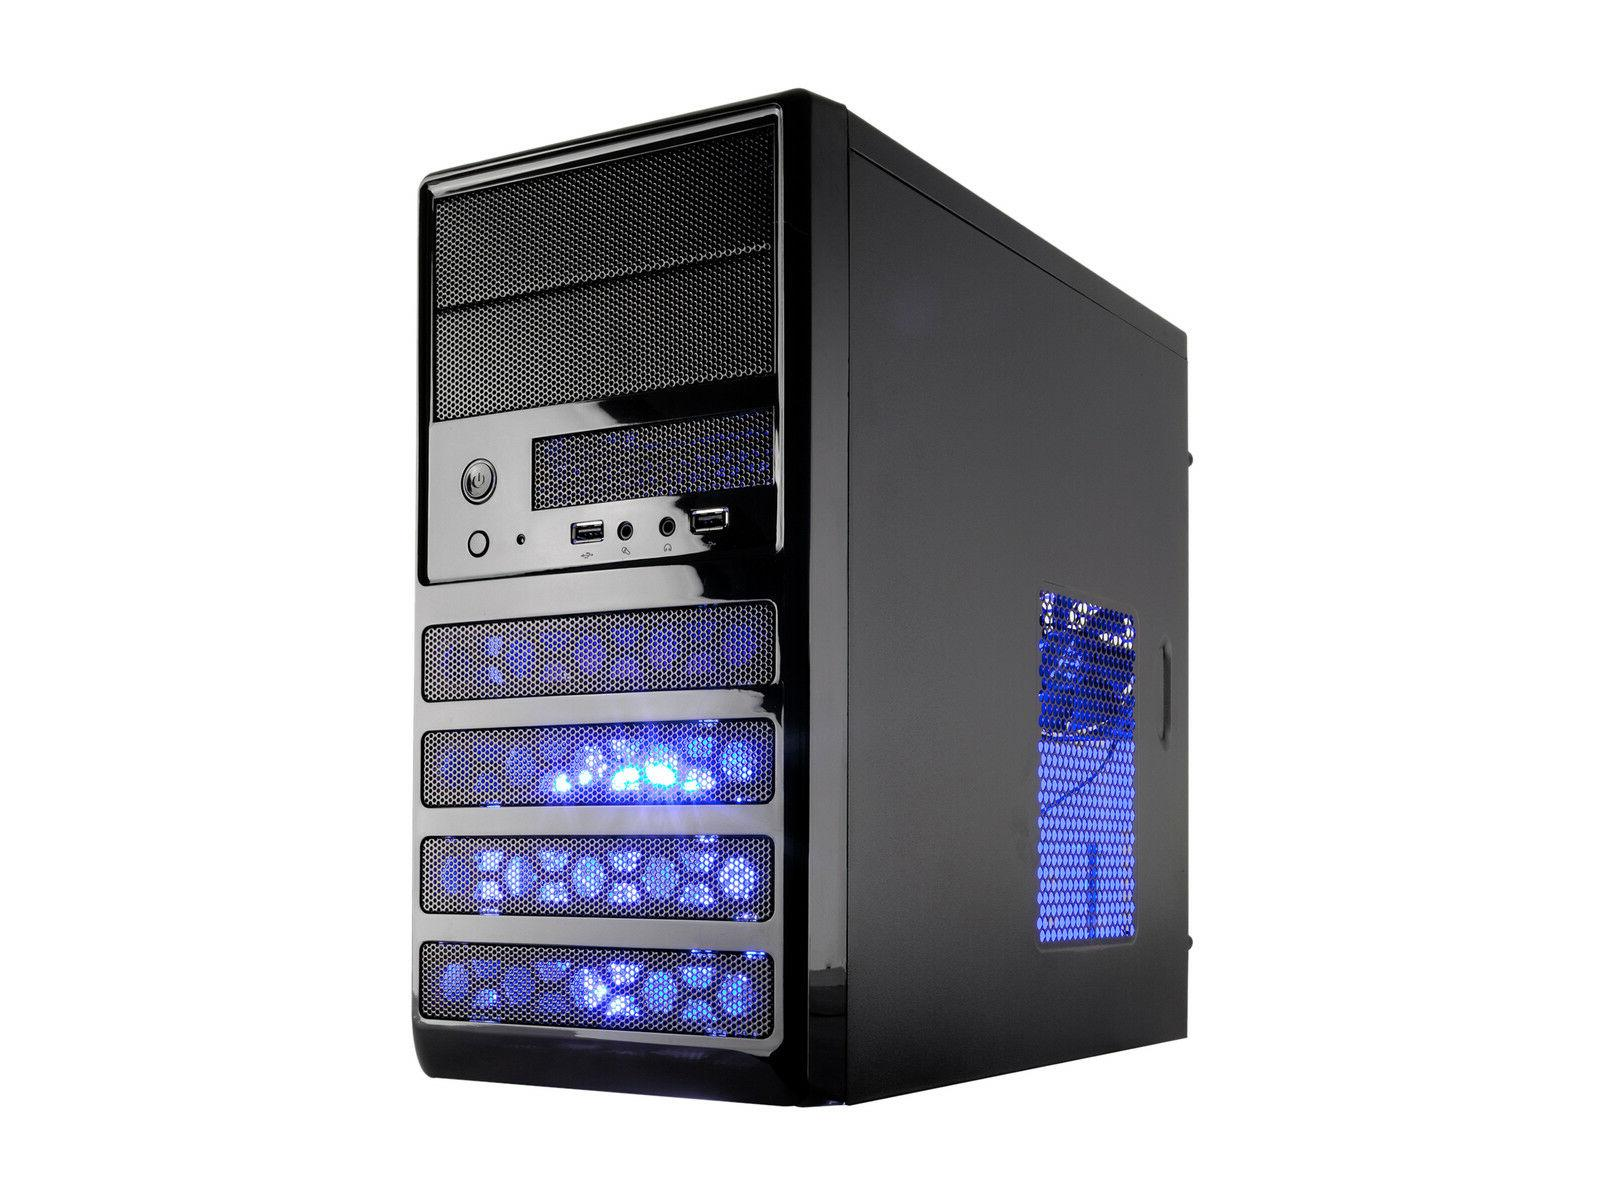 Rosewill Dual Fans MicroATX Mini Tower Computer Case with US